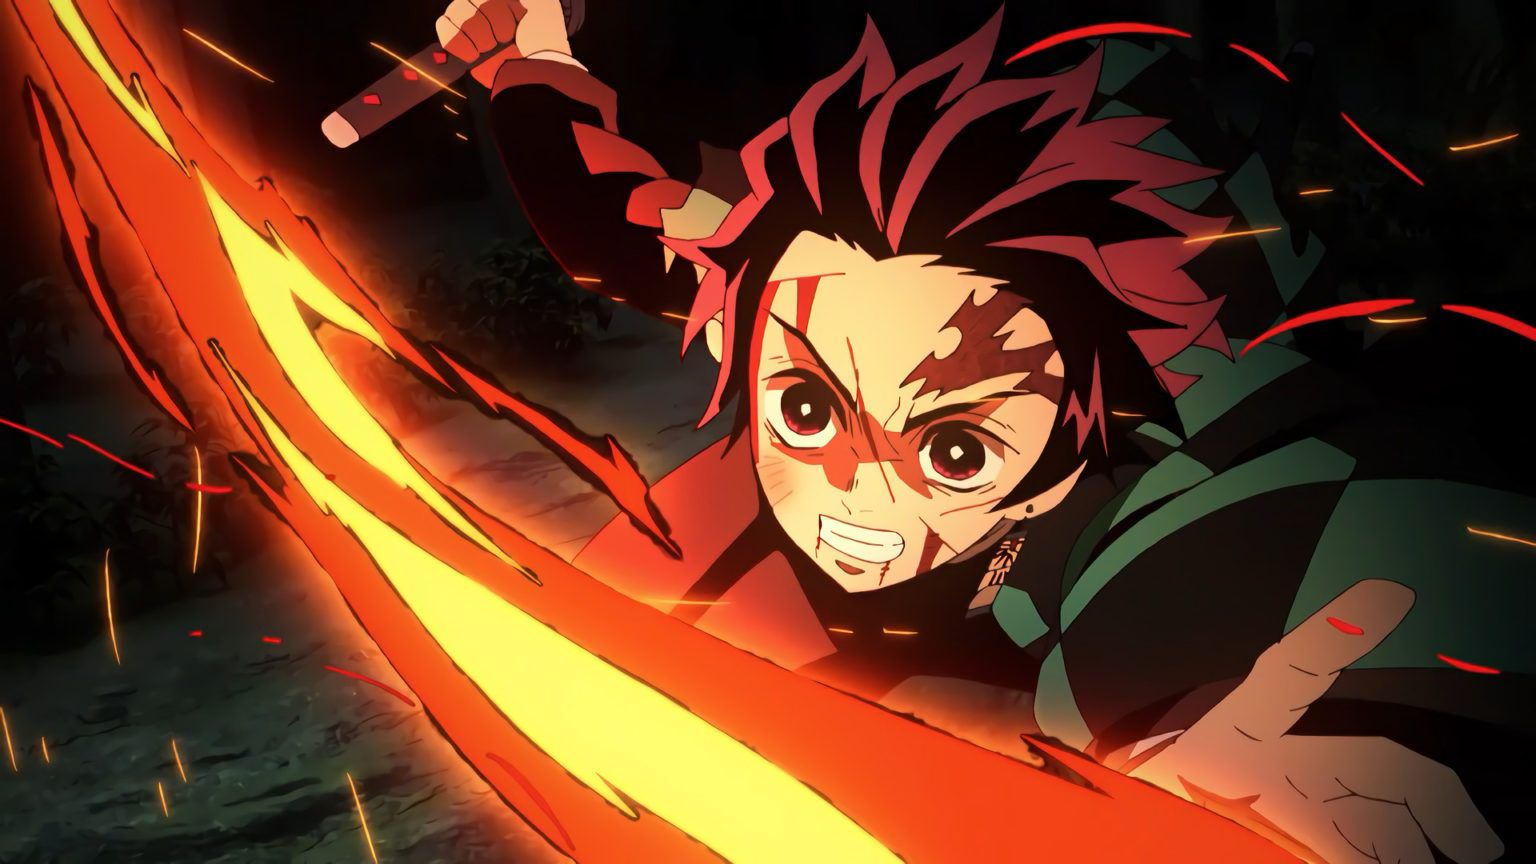 Best Demon Slayer Tanjiro Kamado Hd Wallpaper 2020 In 2020 Digital Art Anime Anime Wallpaper Anime